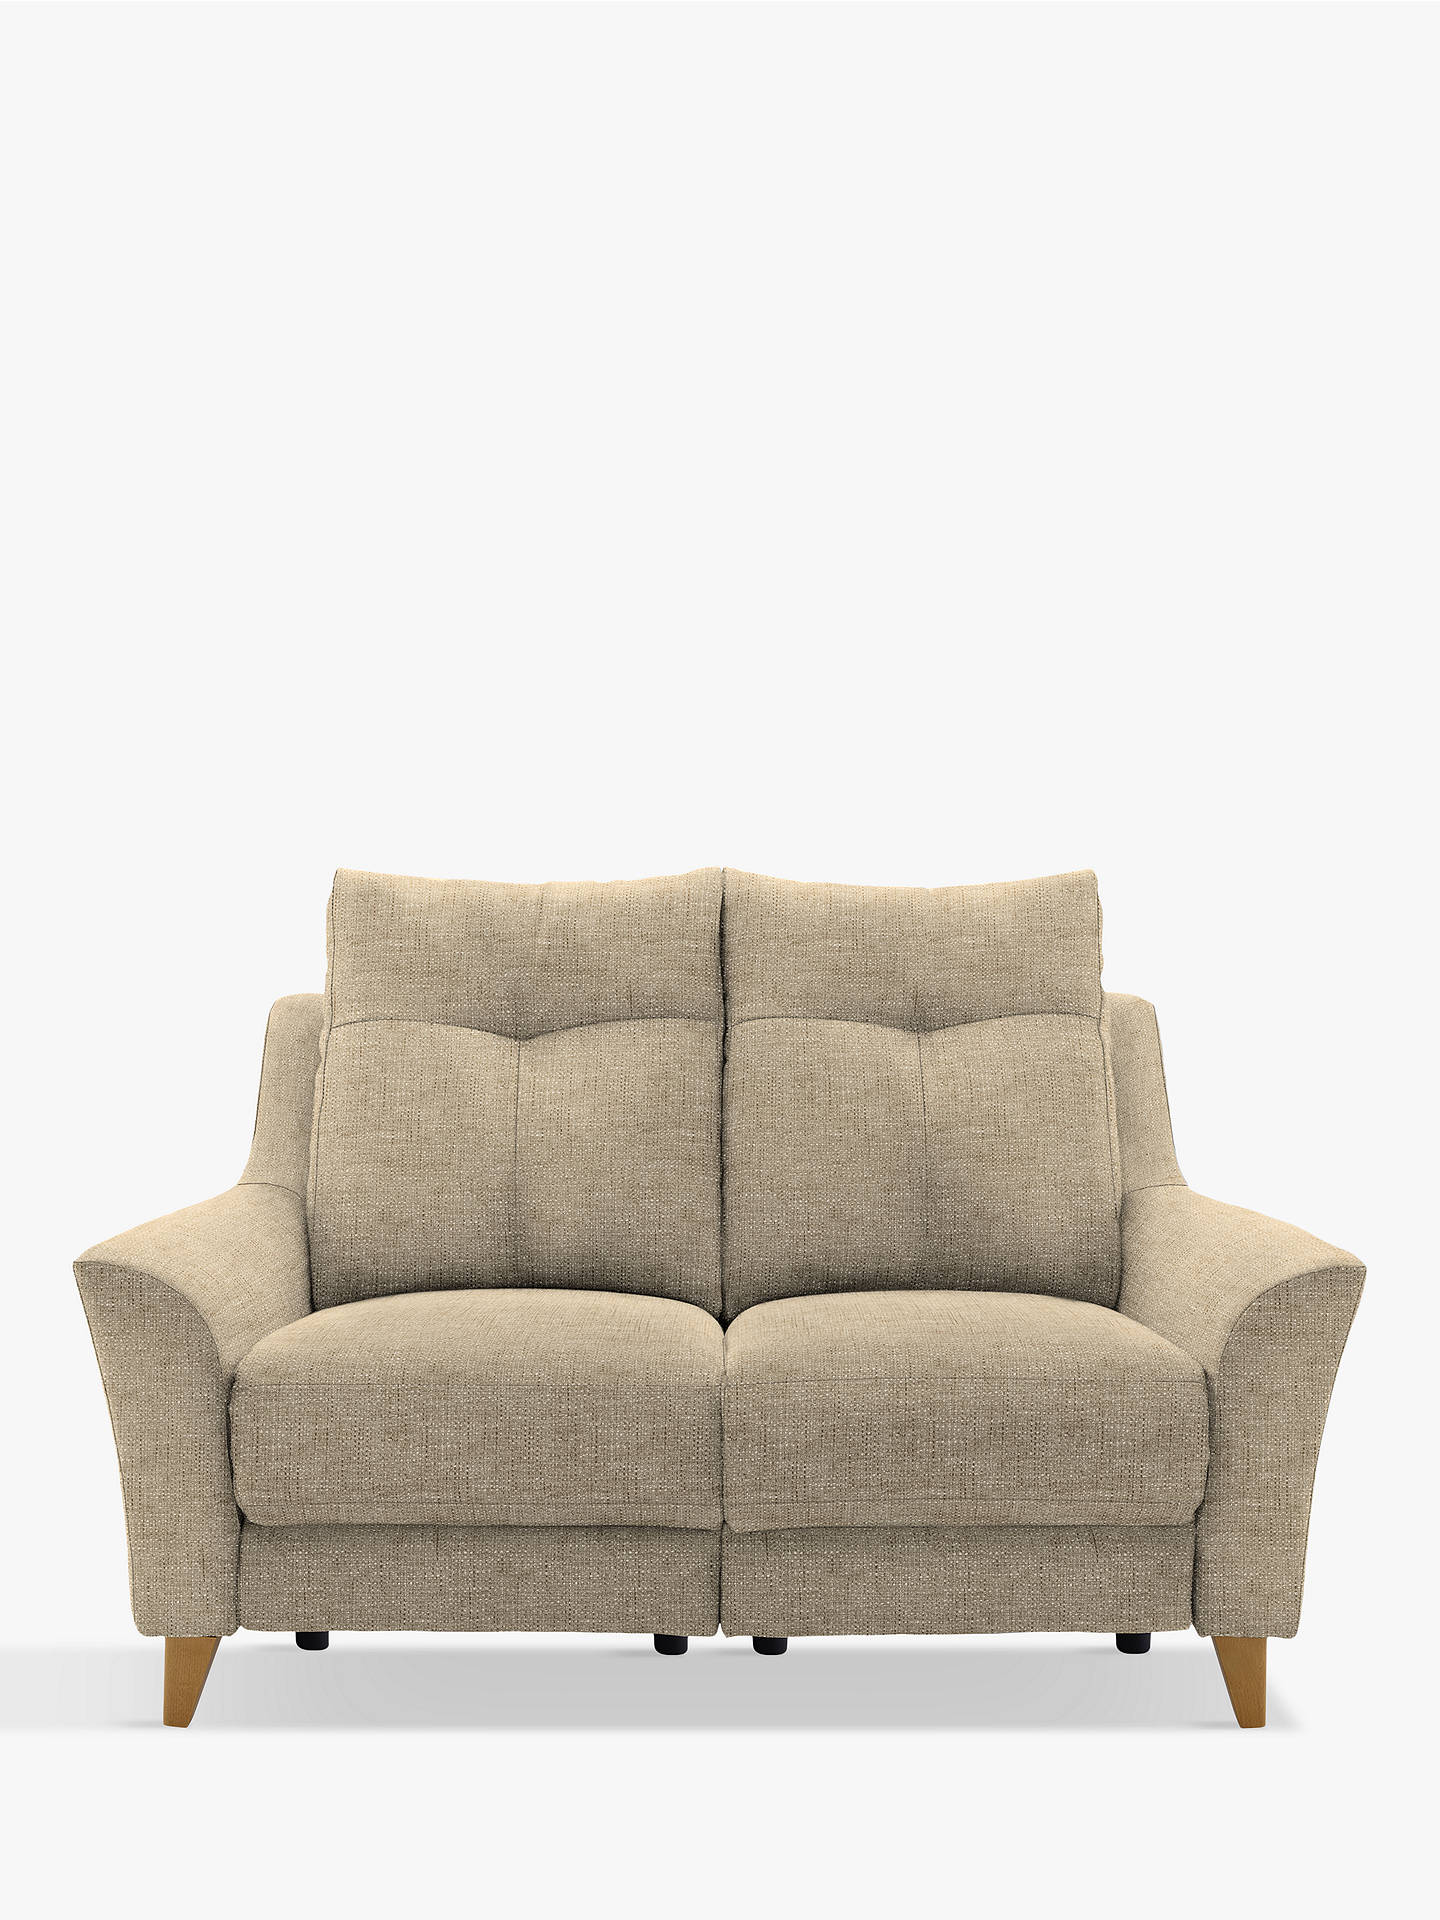 G Plan Hirst Recliner Small 2 Seater Sofa Reed Taupe Online At Johnlewis